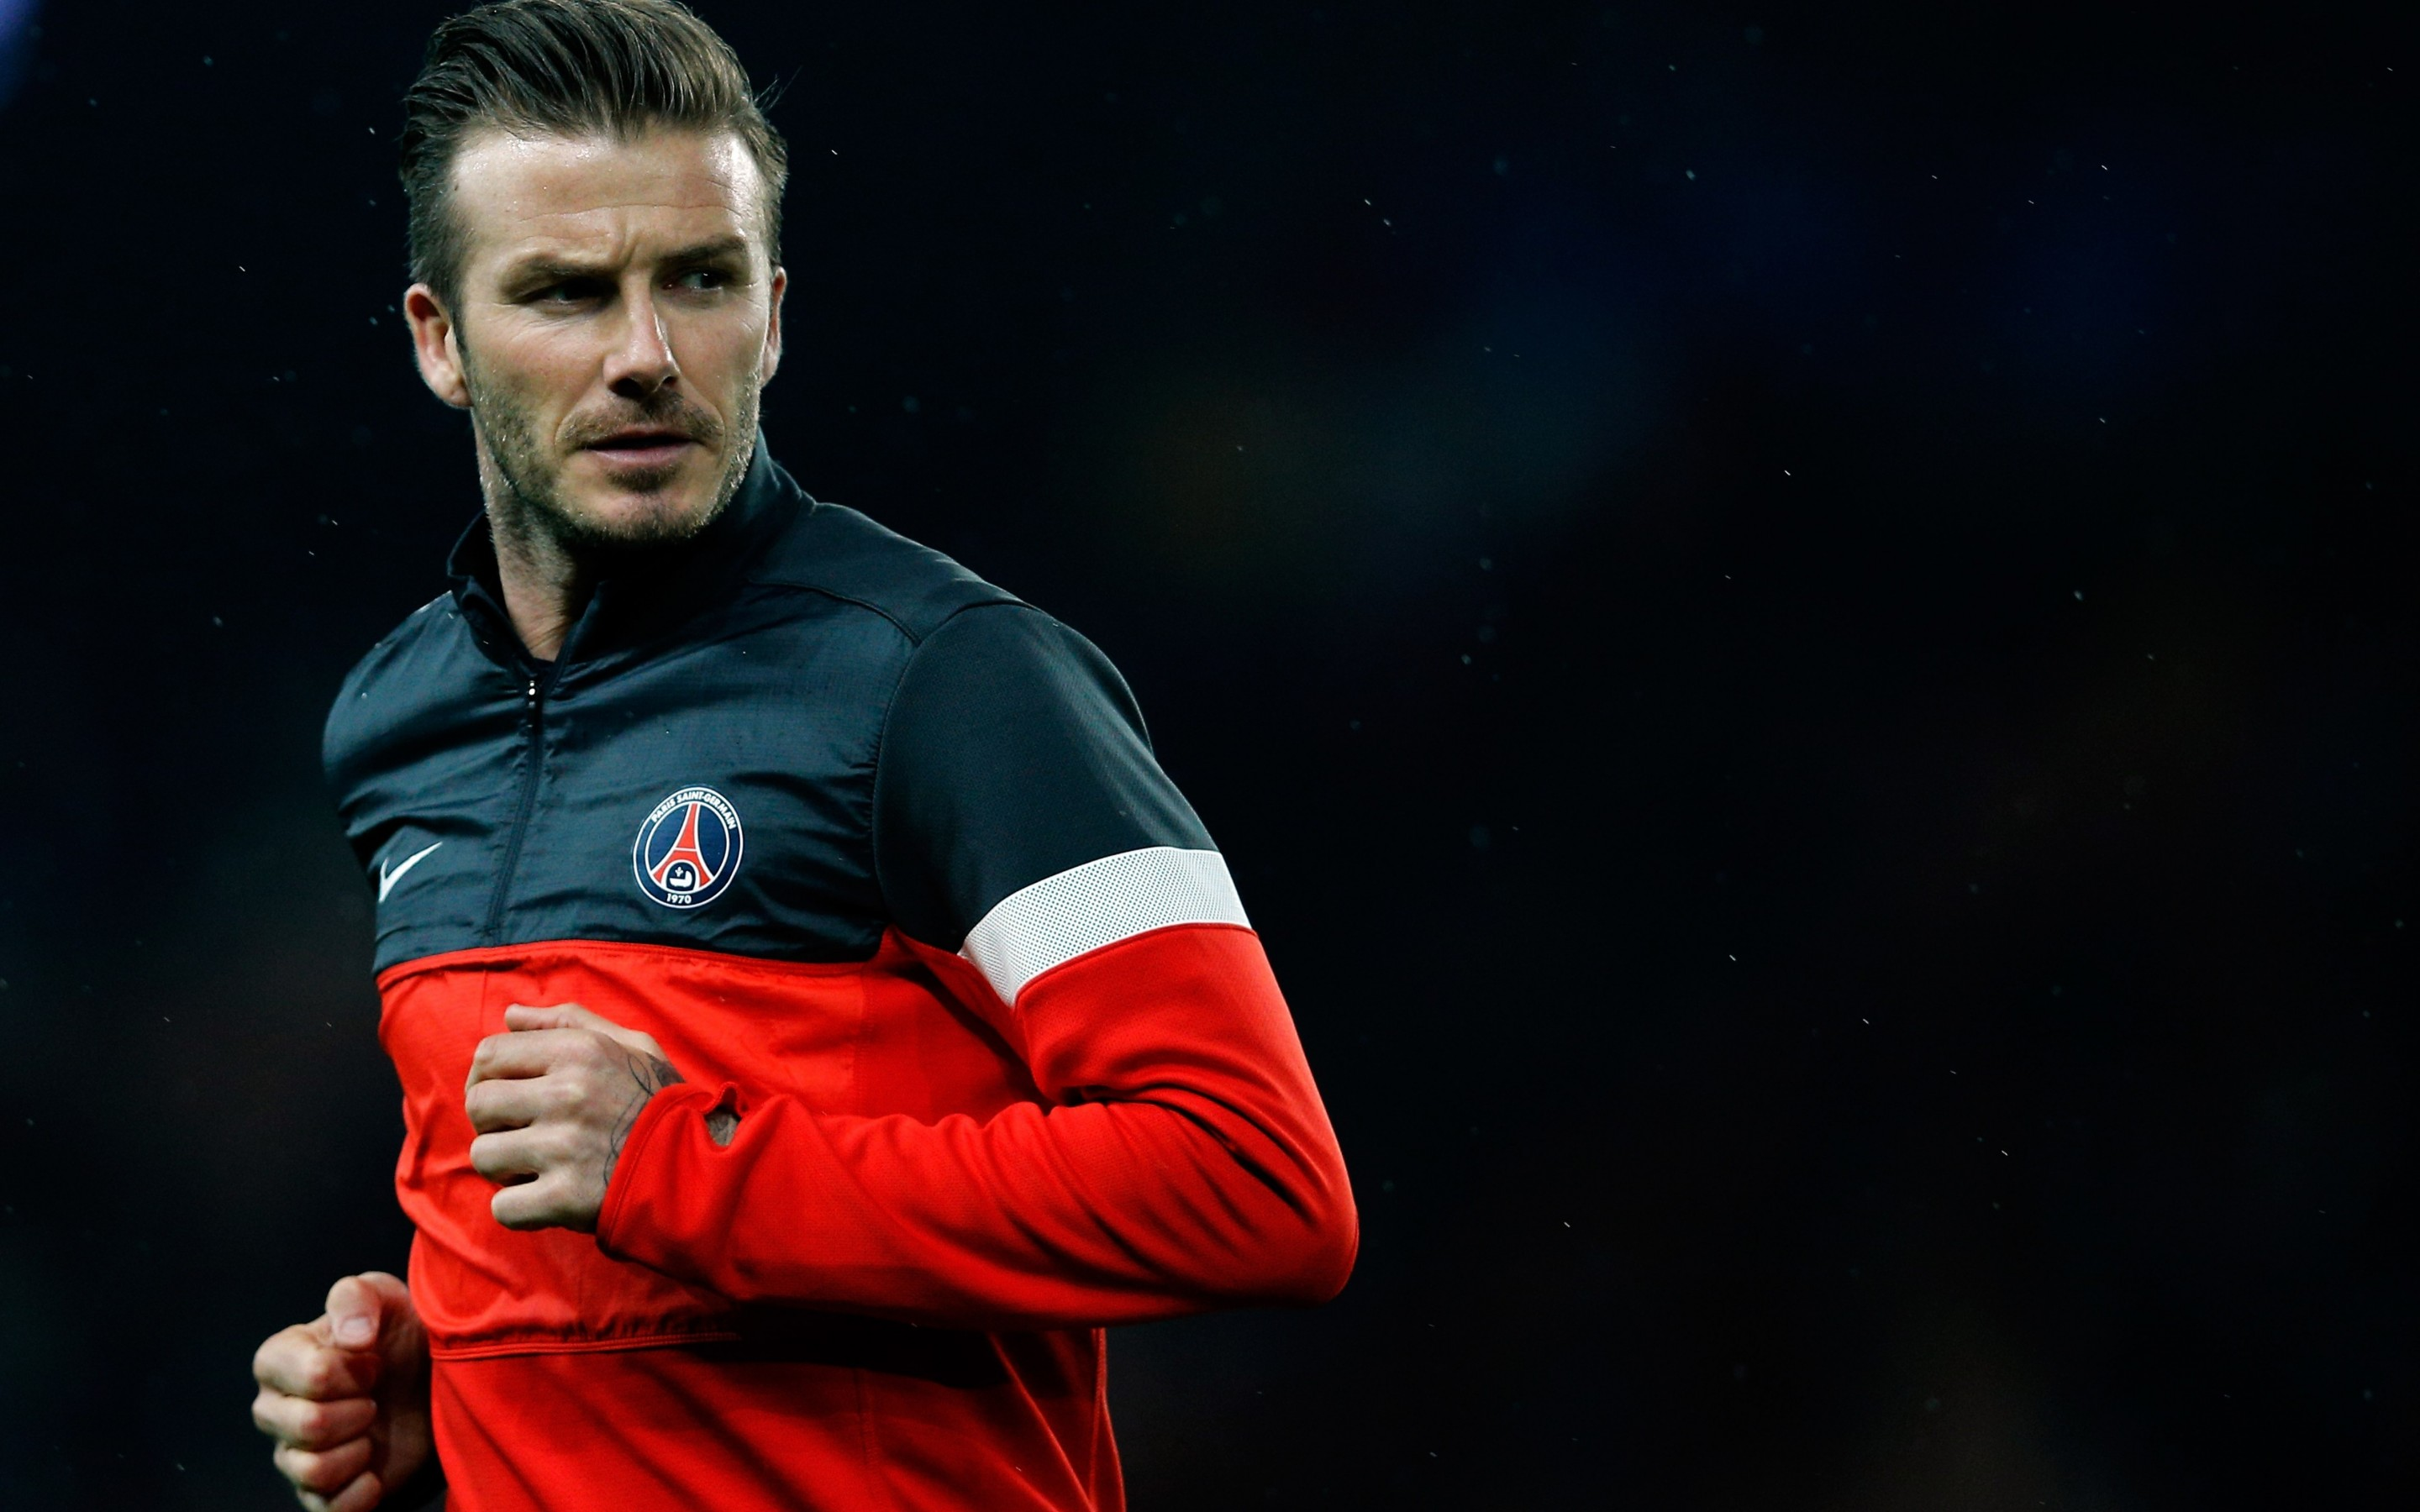 David beckham new hd pictures wallpapers 2015 all hd New all hd video